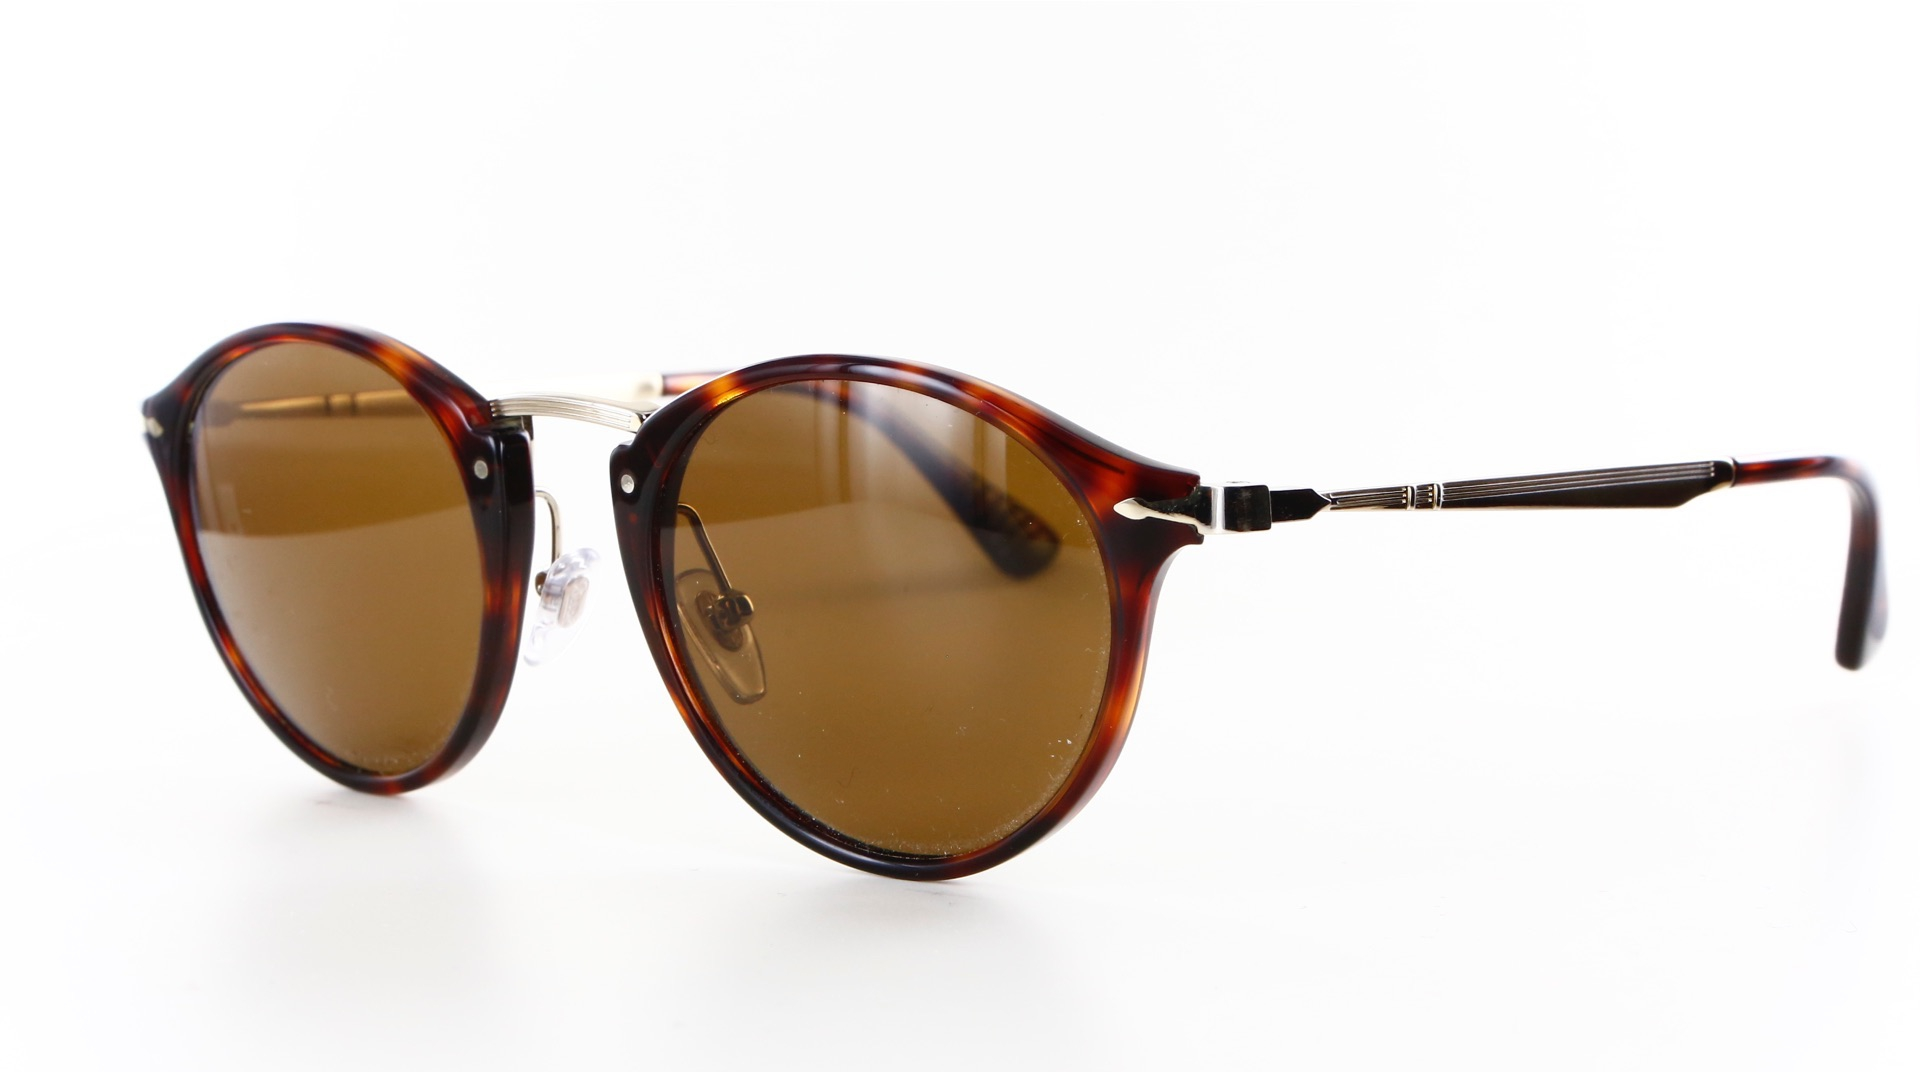 Persol - ref: 77871